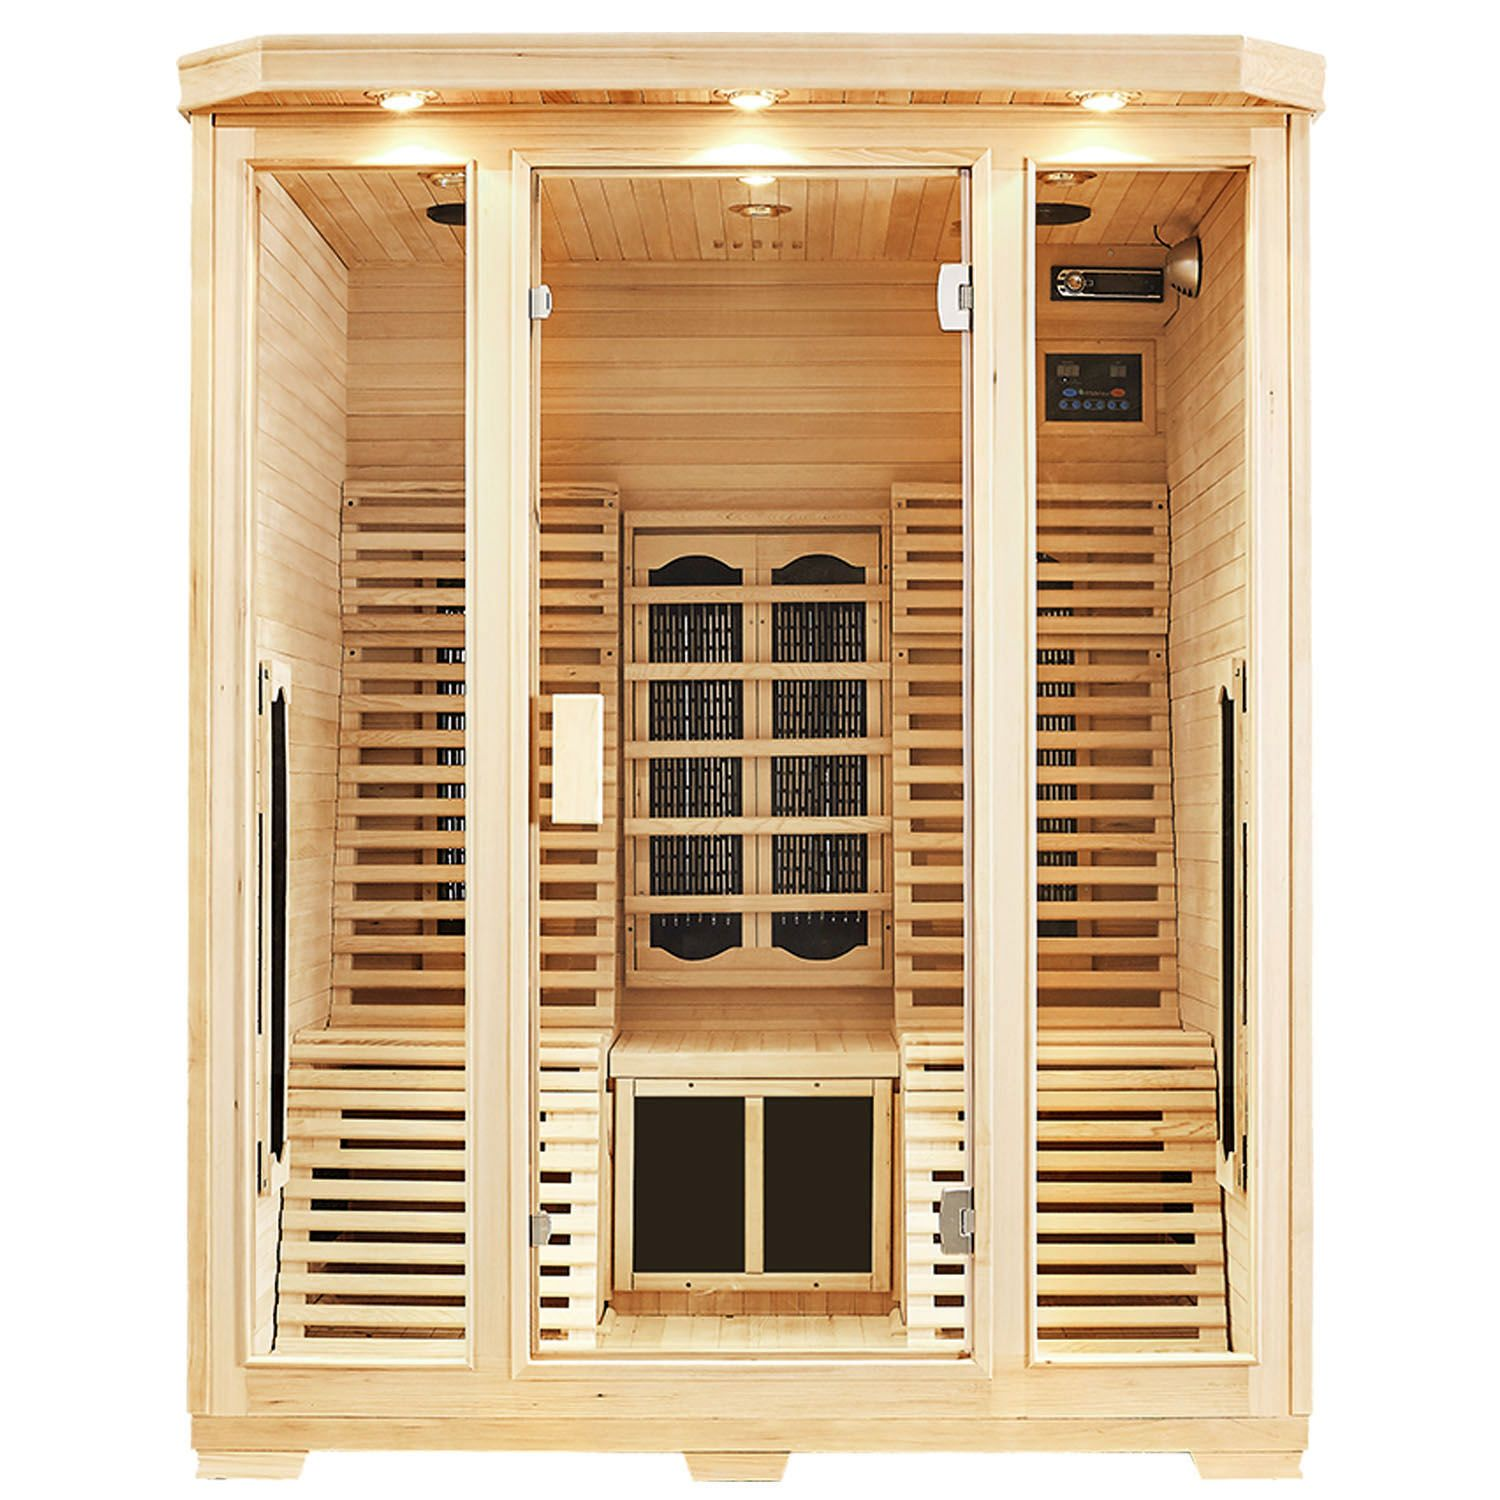 infrarotkabine infrarot w rmekabine infrarotsauna sauna ebay. Black Bedroom Furniture Sets. Home Design Ideas